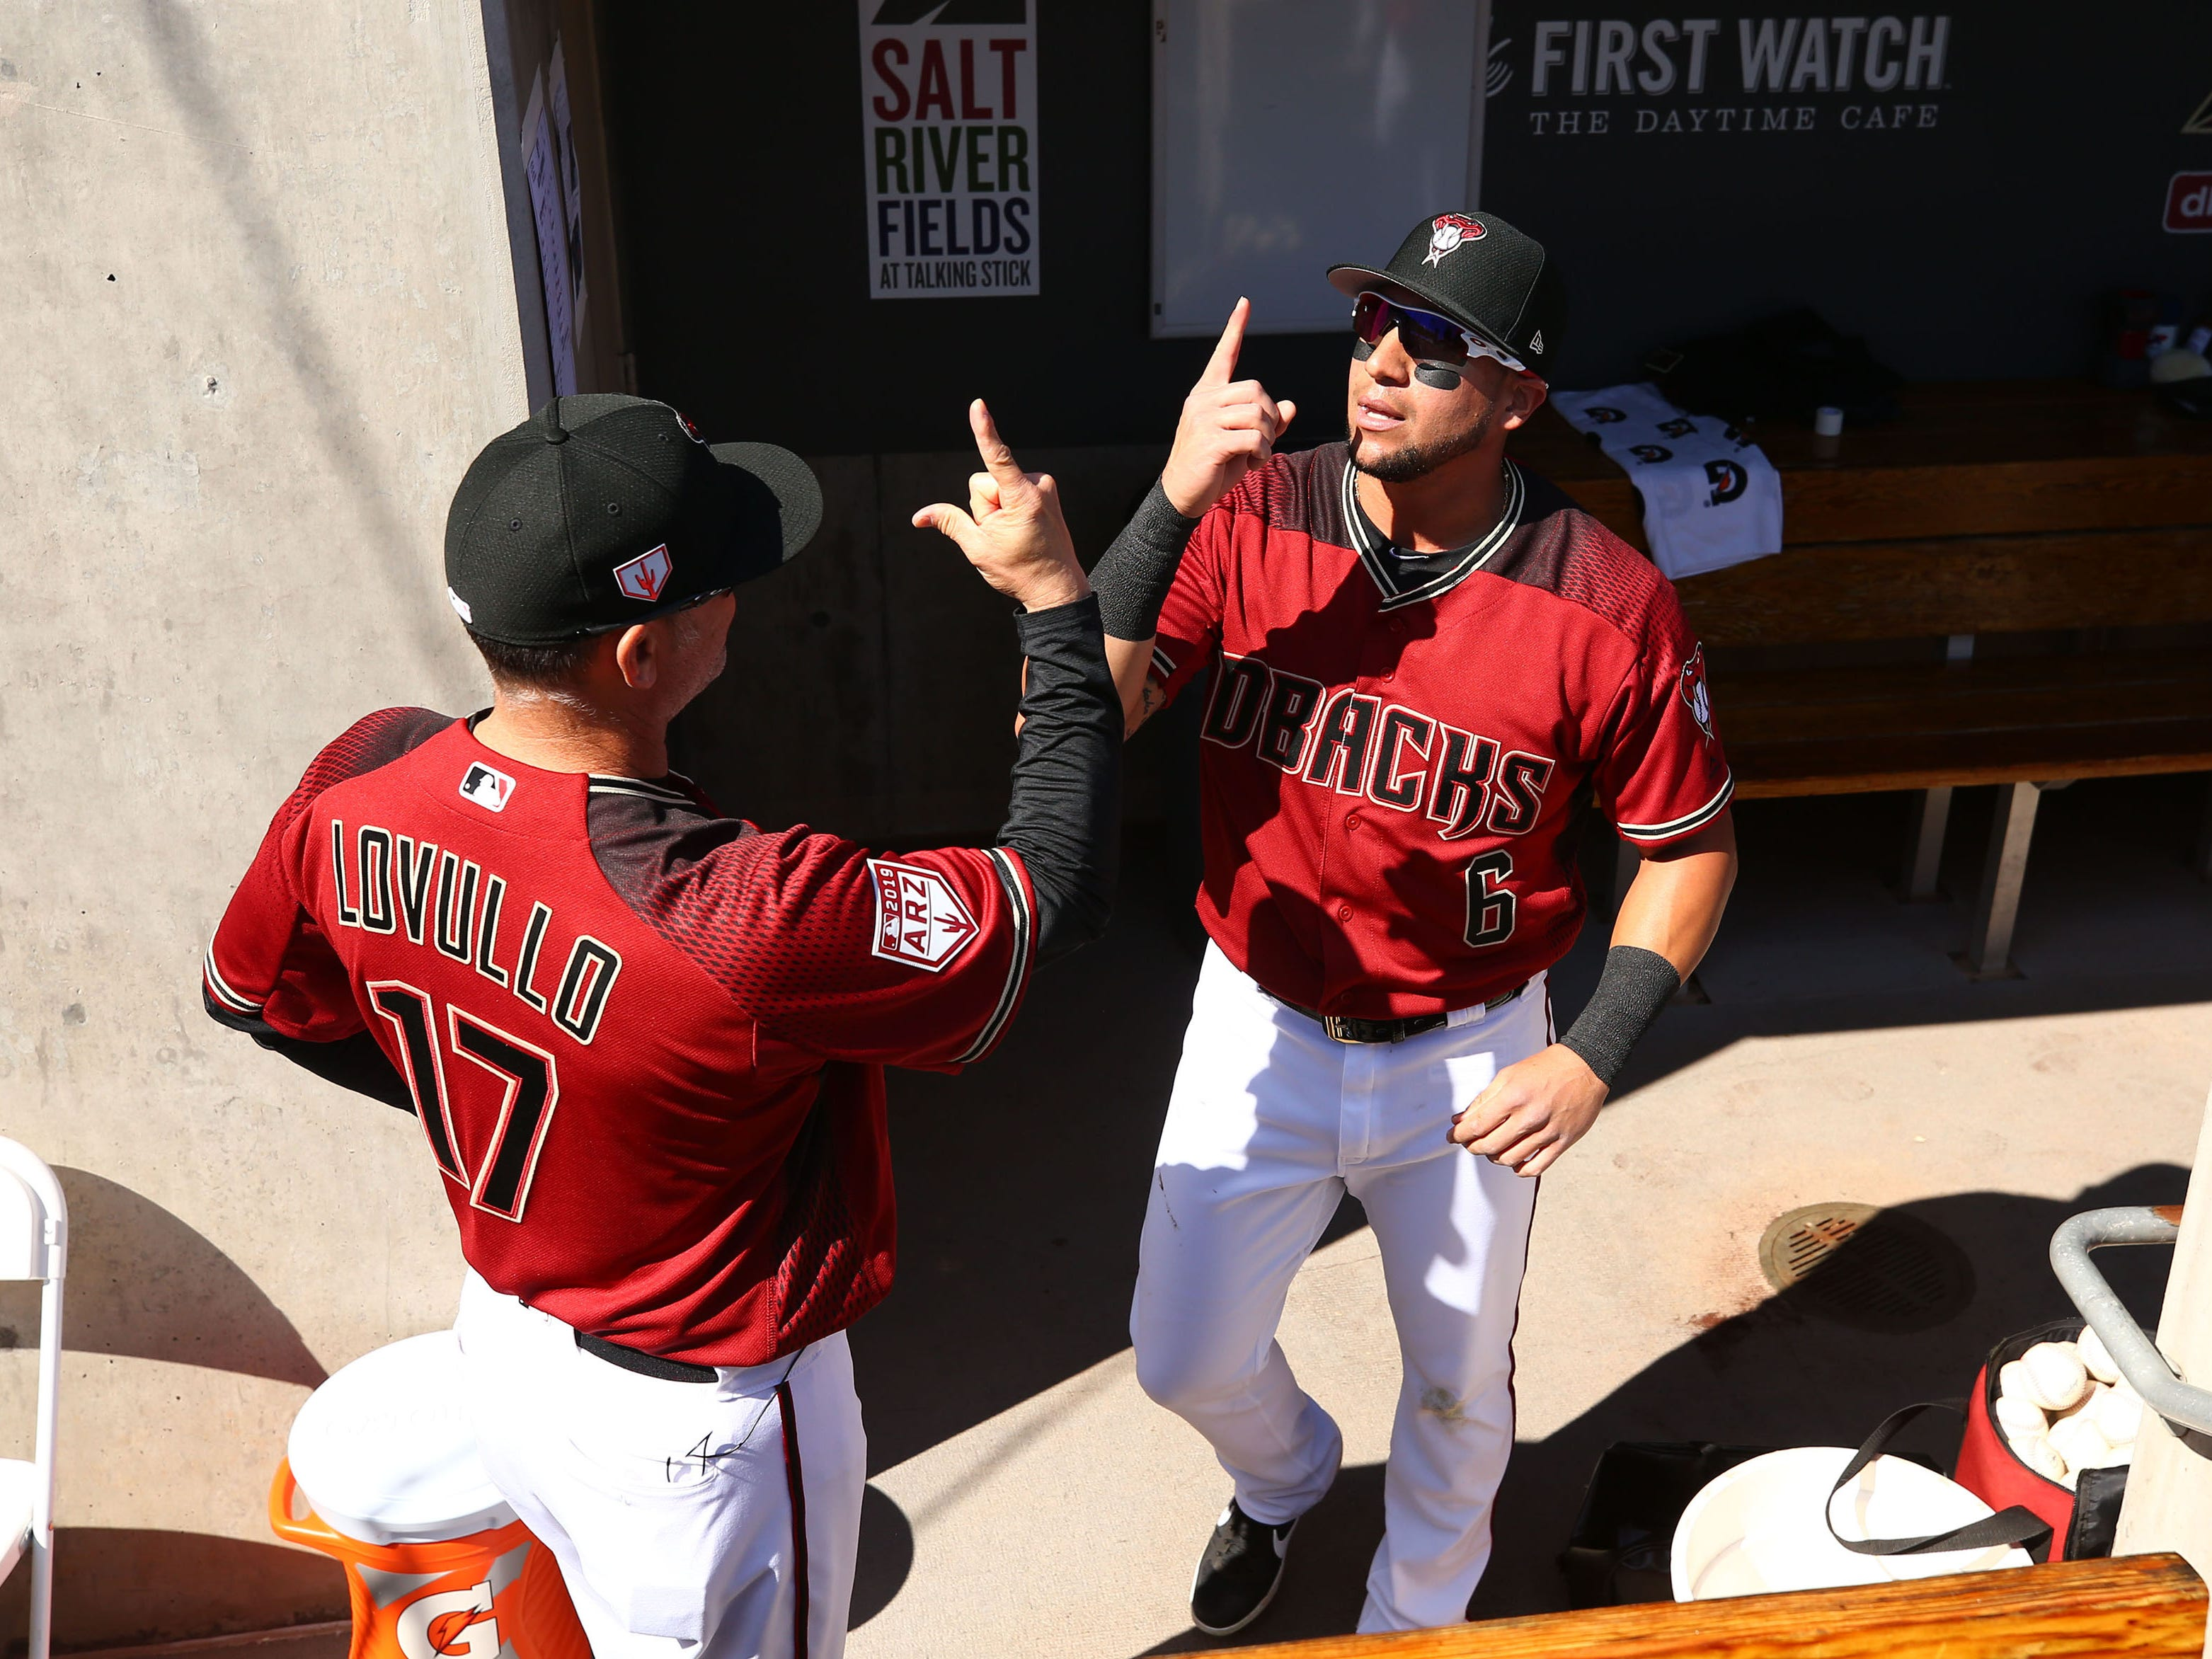 Arizona Diamondbacks manager Torey Lovullo and outfielder David Peralta react before playing the Colorado Rockies during a spring training game on Feb. 23, 2019 at Salt River Fields in Scottsdale, Ariz.